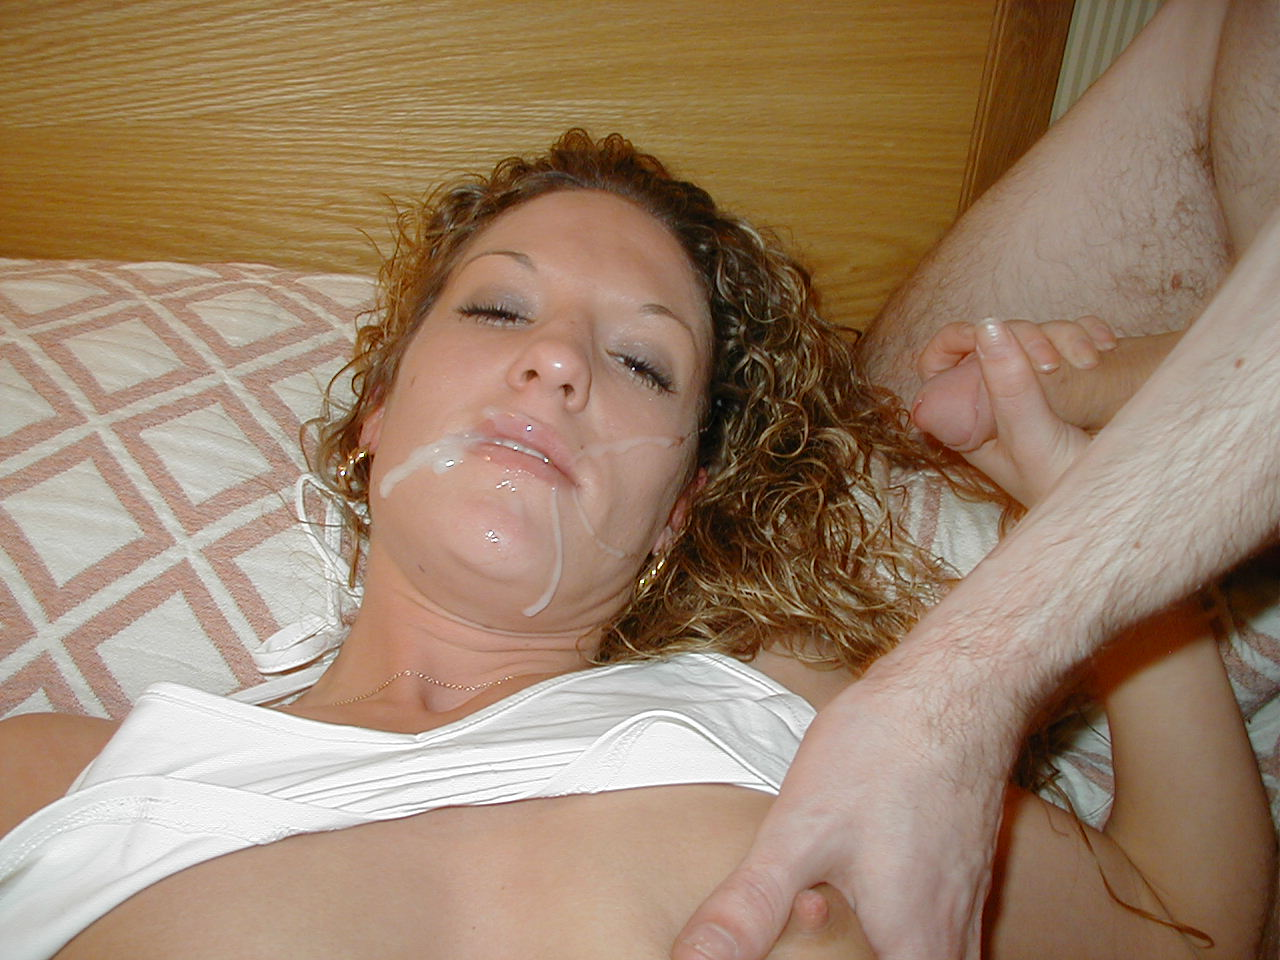 lady j sucks cock upside down